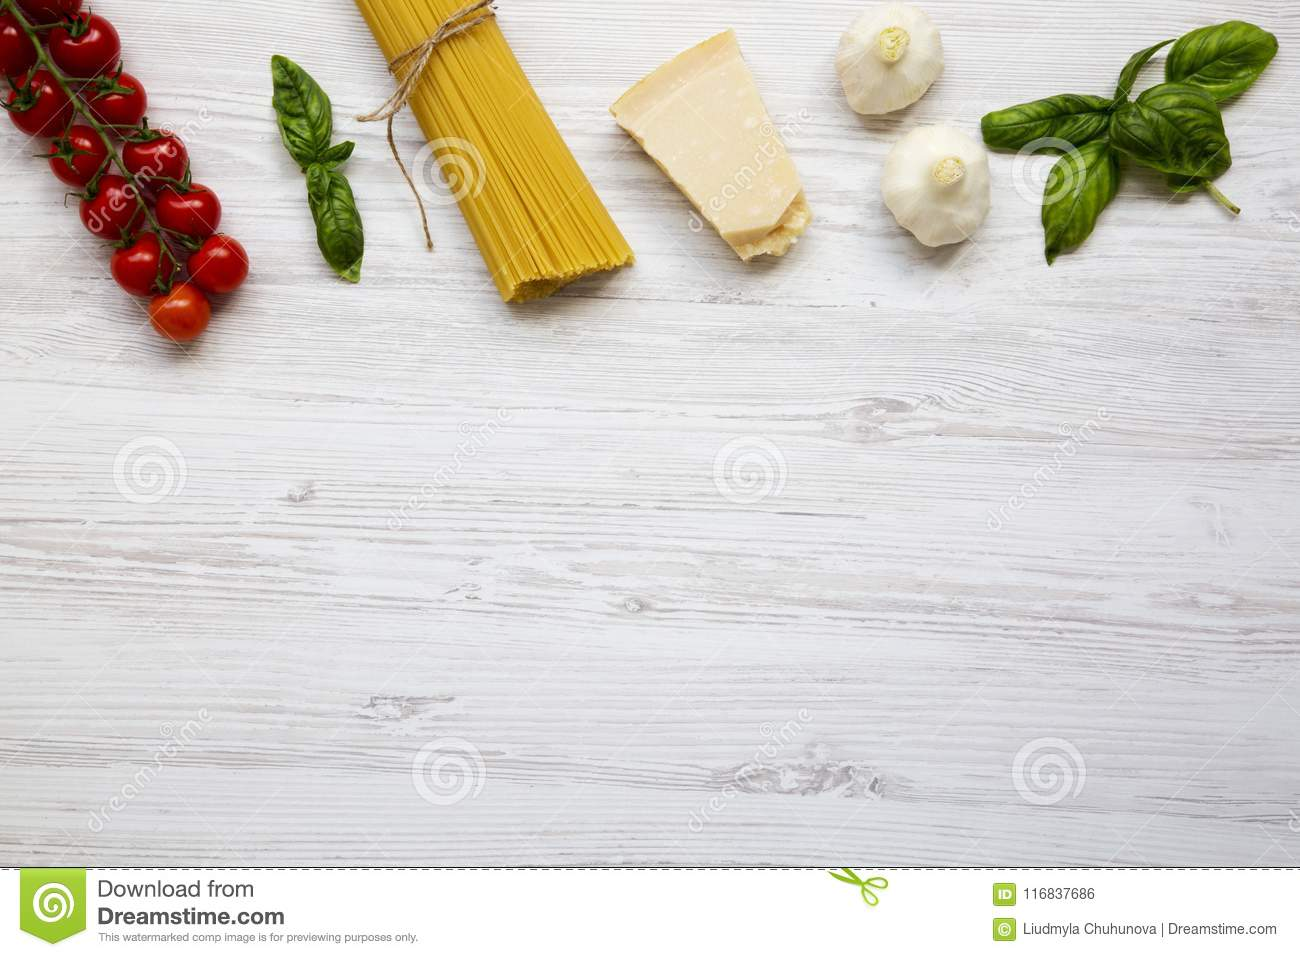 Ingredients for cooking pasta on a white wooden background.